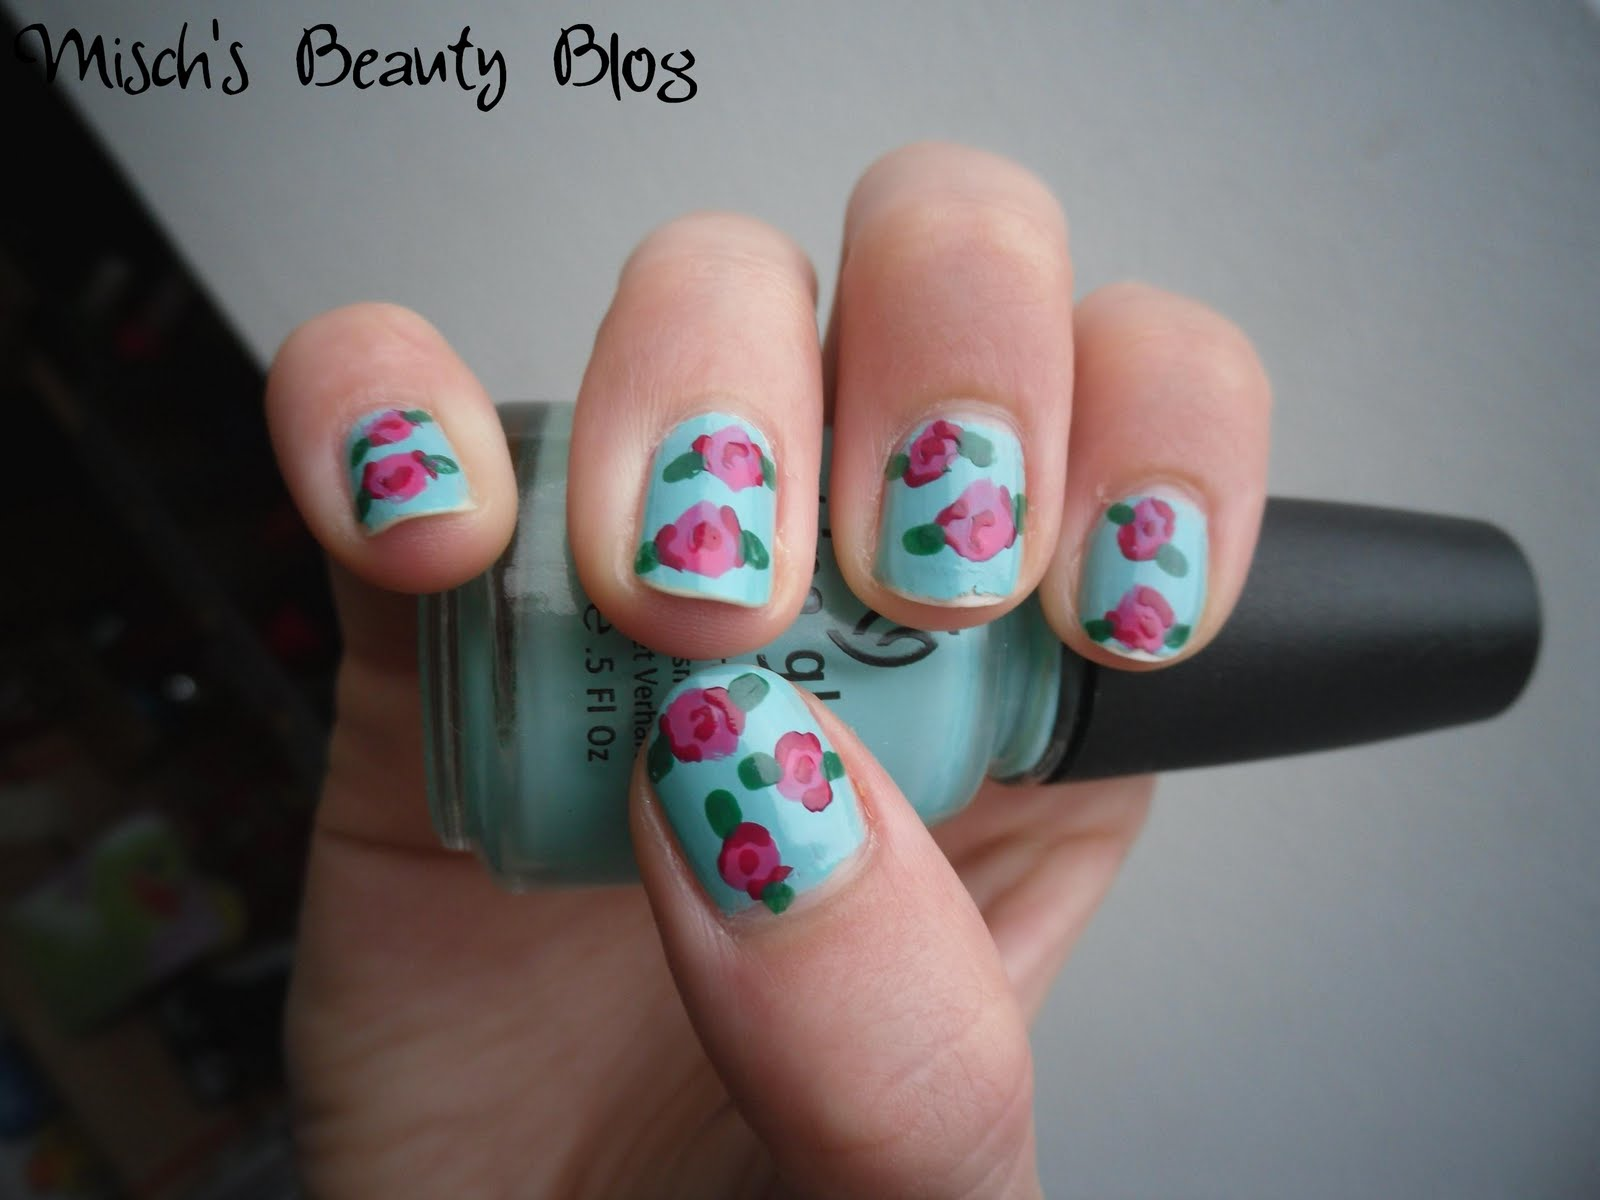 Misch's Beauty Blog: Picture Tutorial: Vintage Rose Nail Art